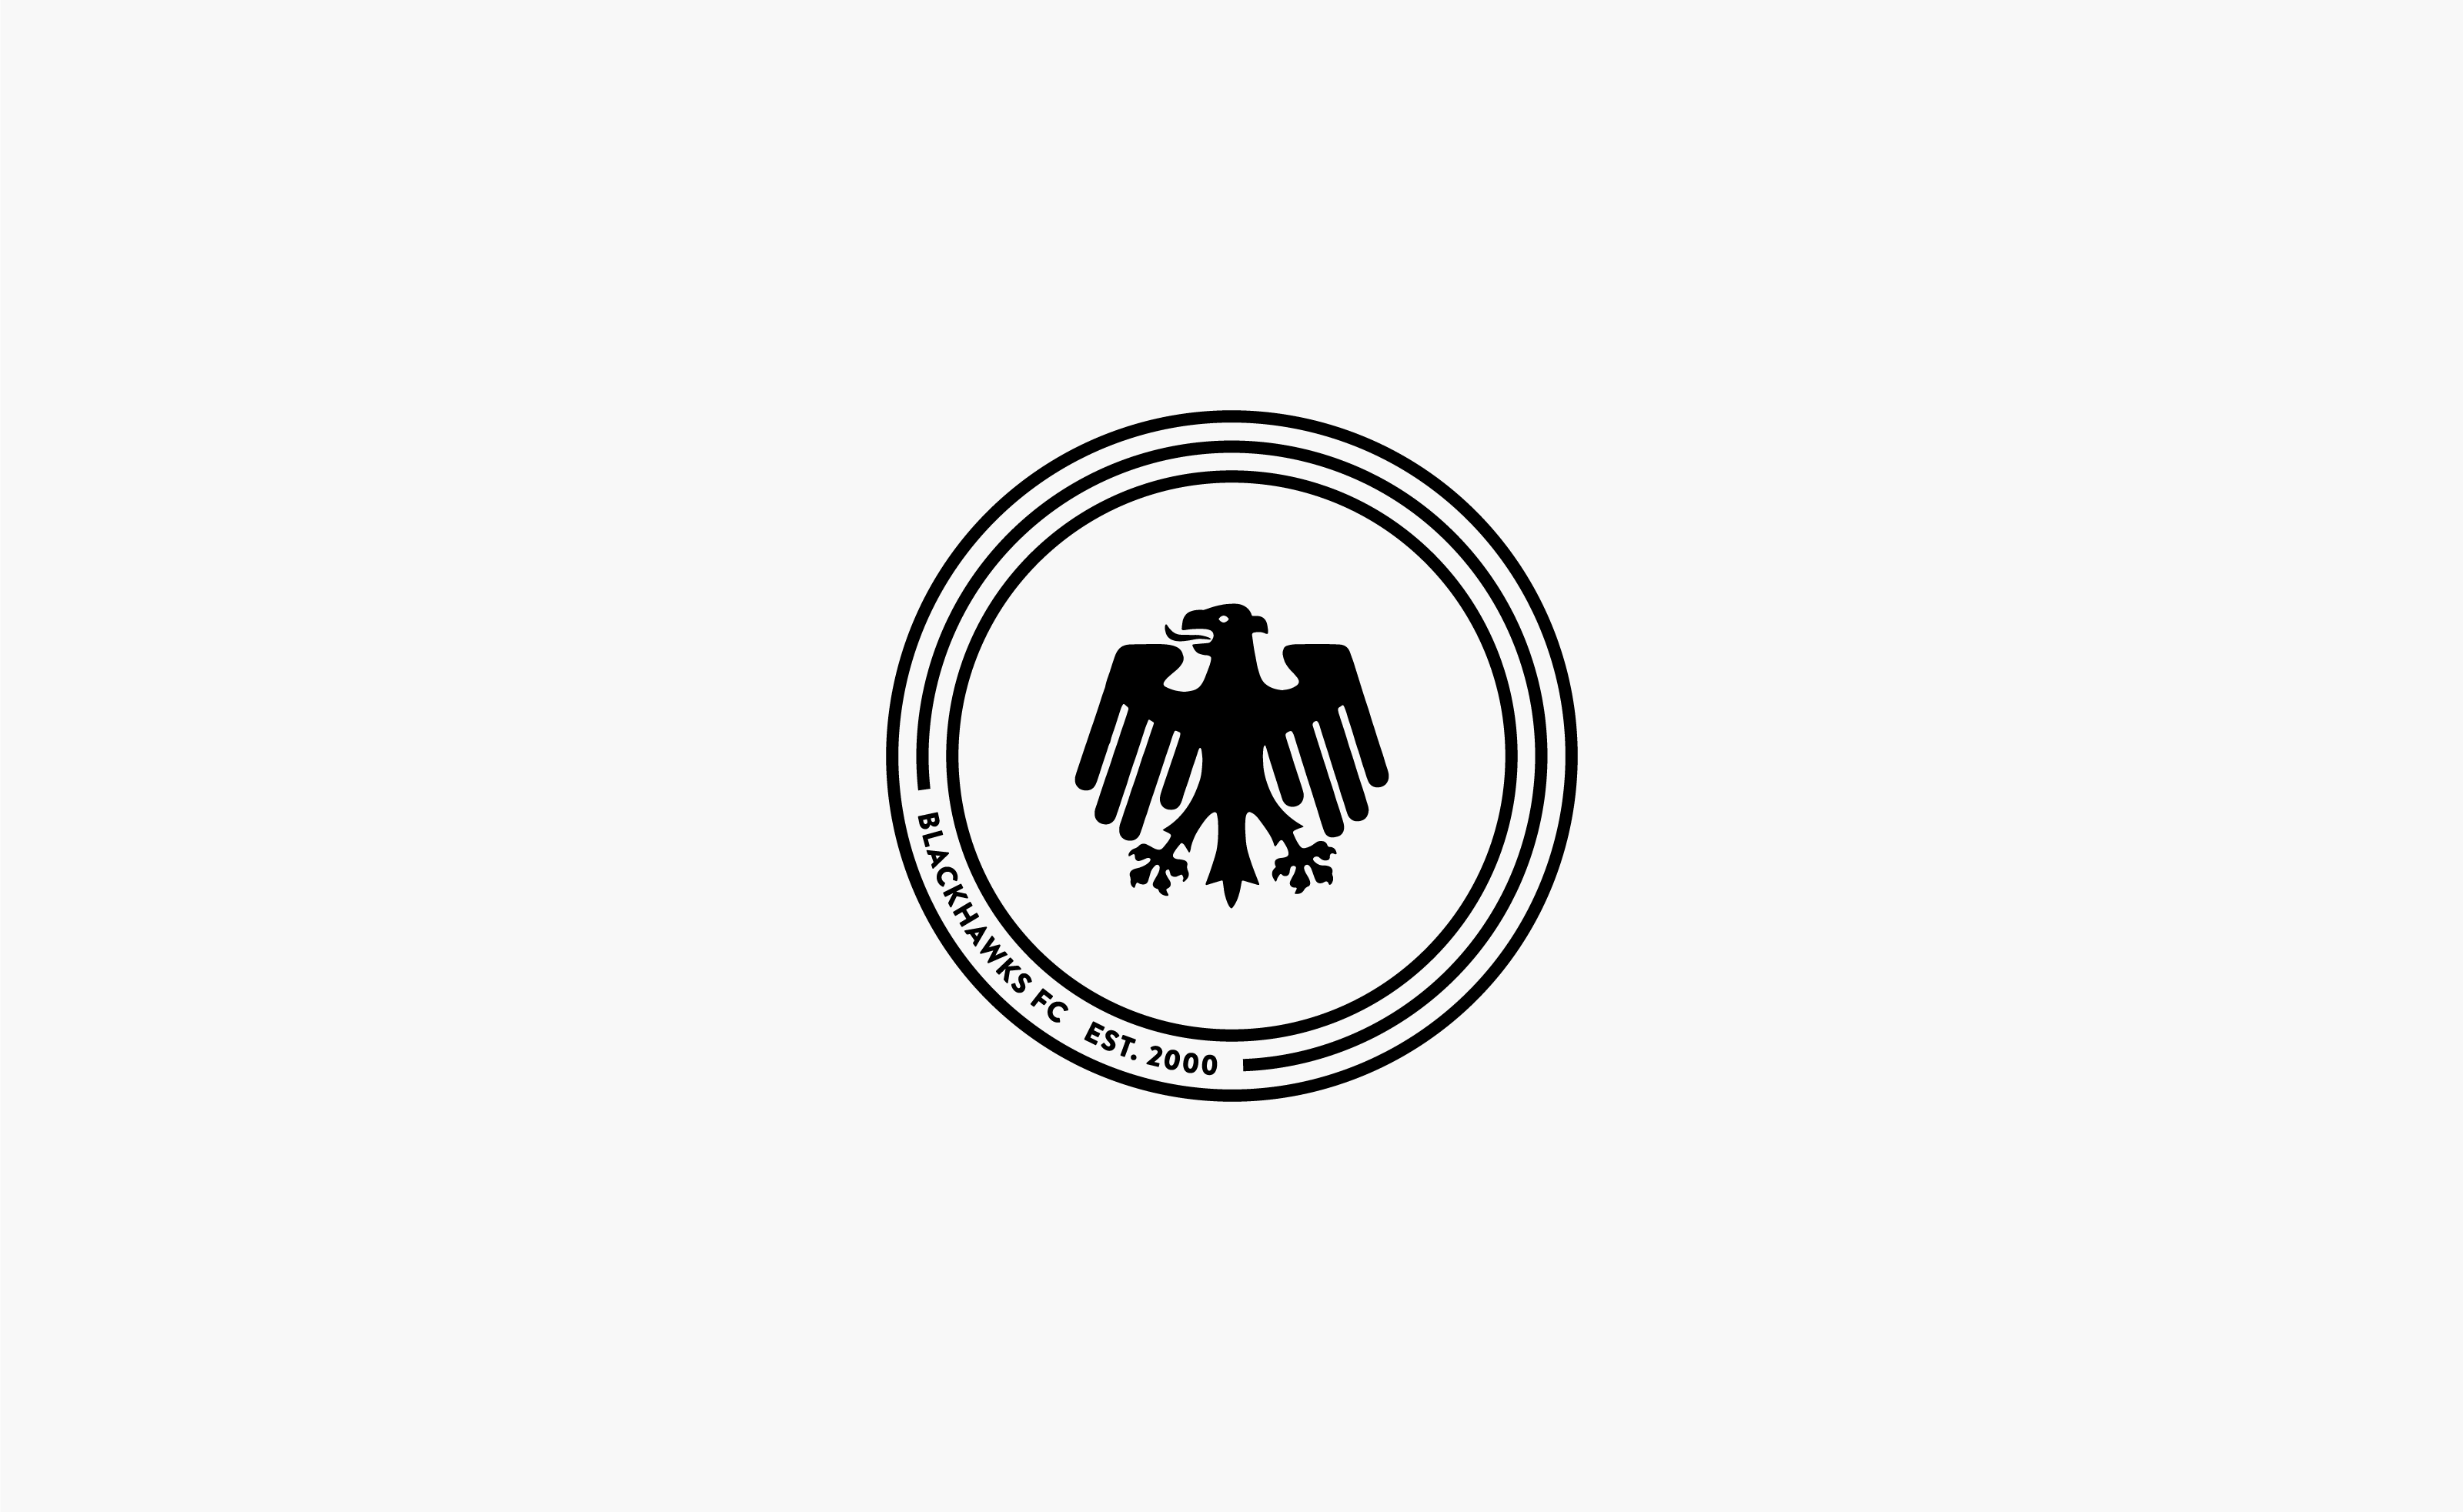 Blackhawks FC logo centered on grey background — by Yagnyuk